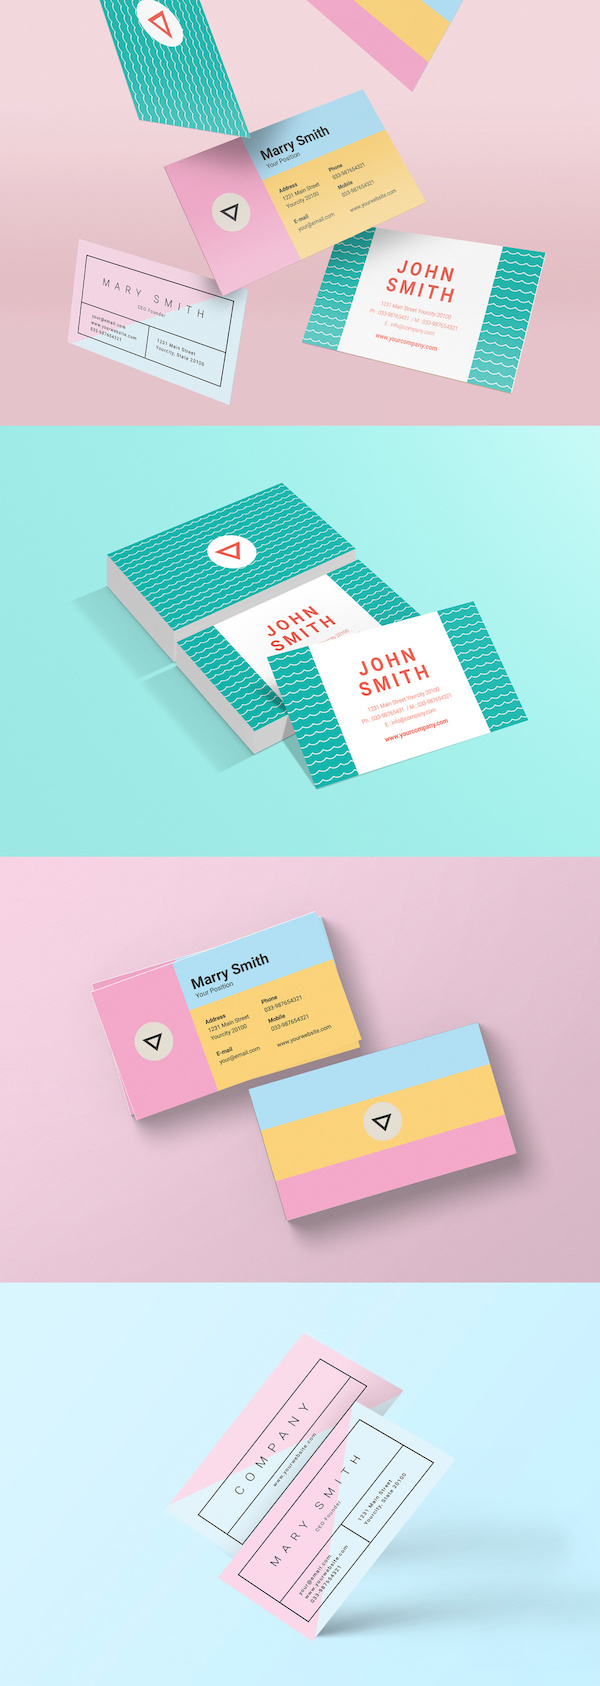 10 Eye-Catching Business Card Designs That Will Leave A Lasting ...